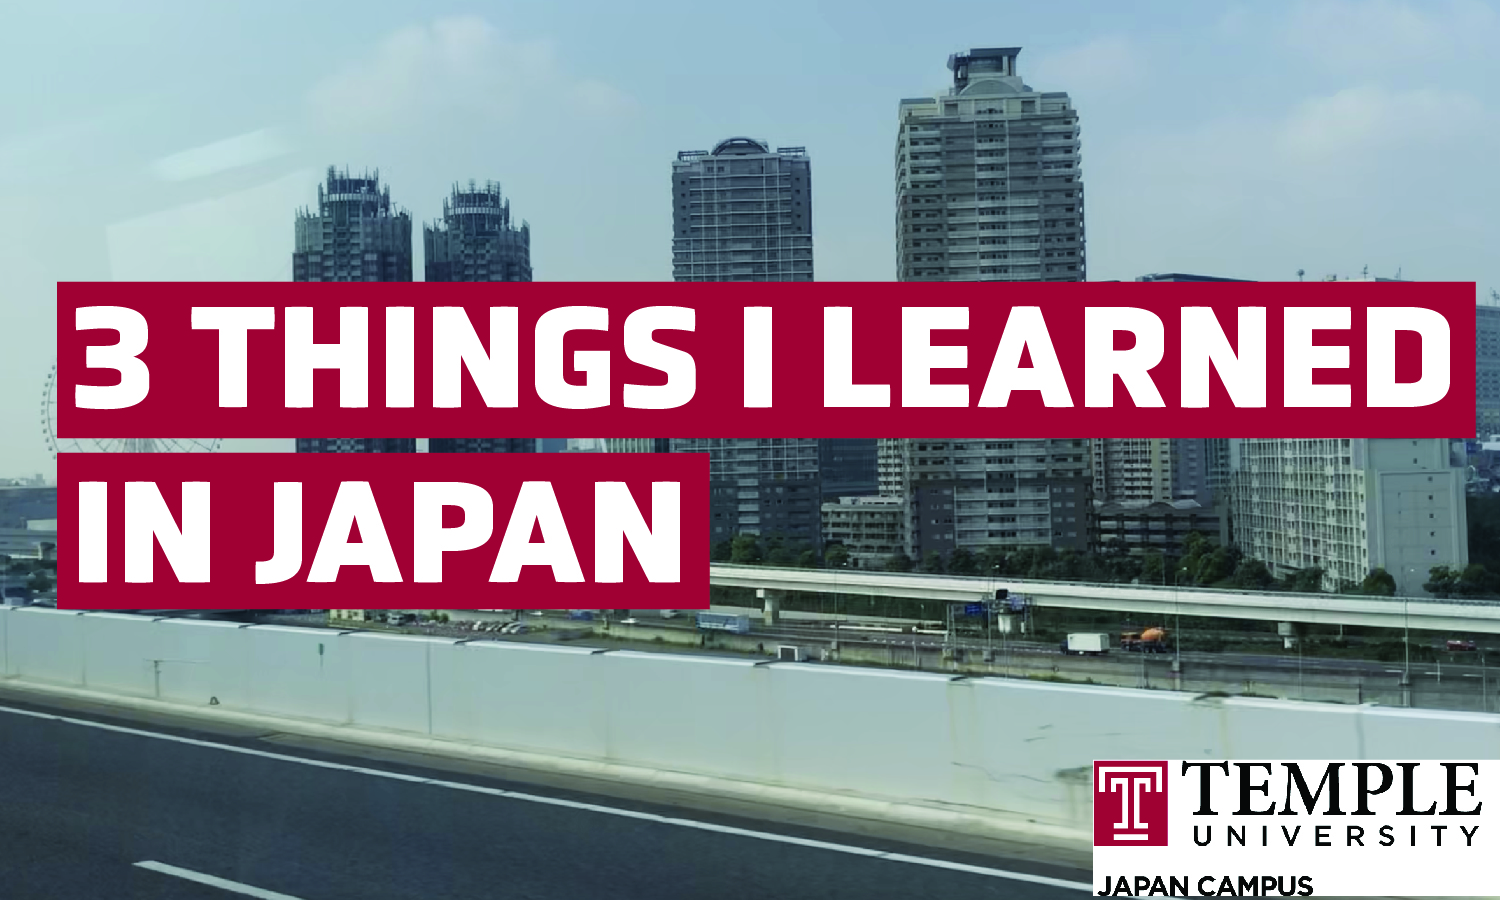 3 things I learned in Japan